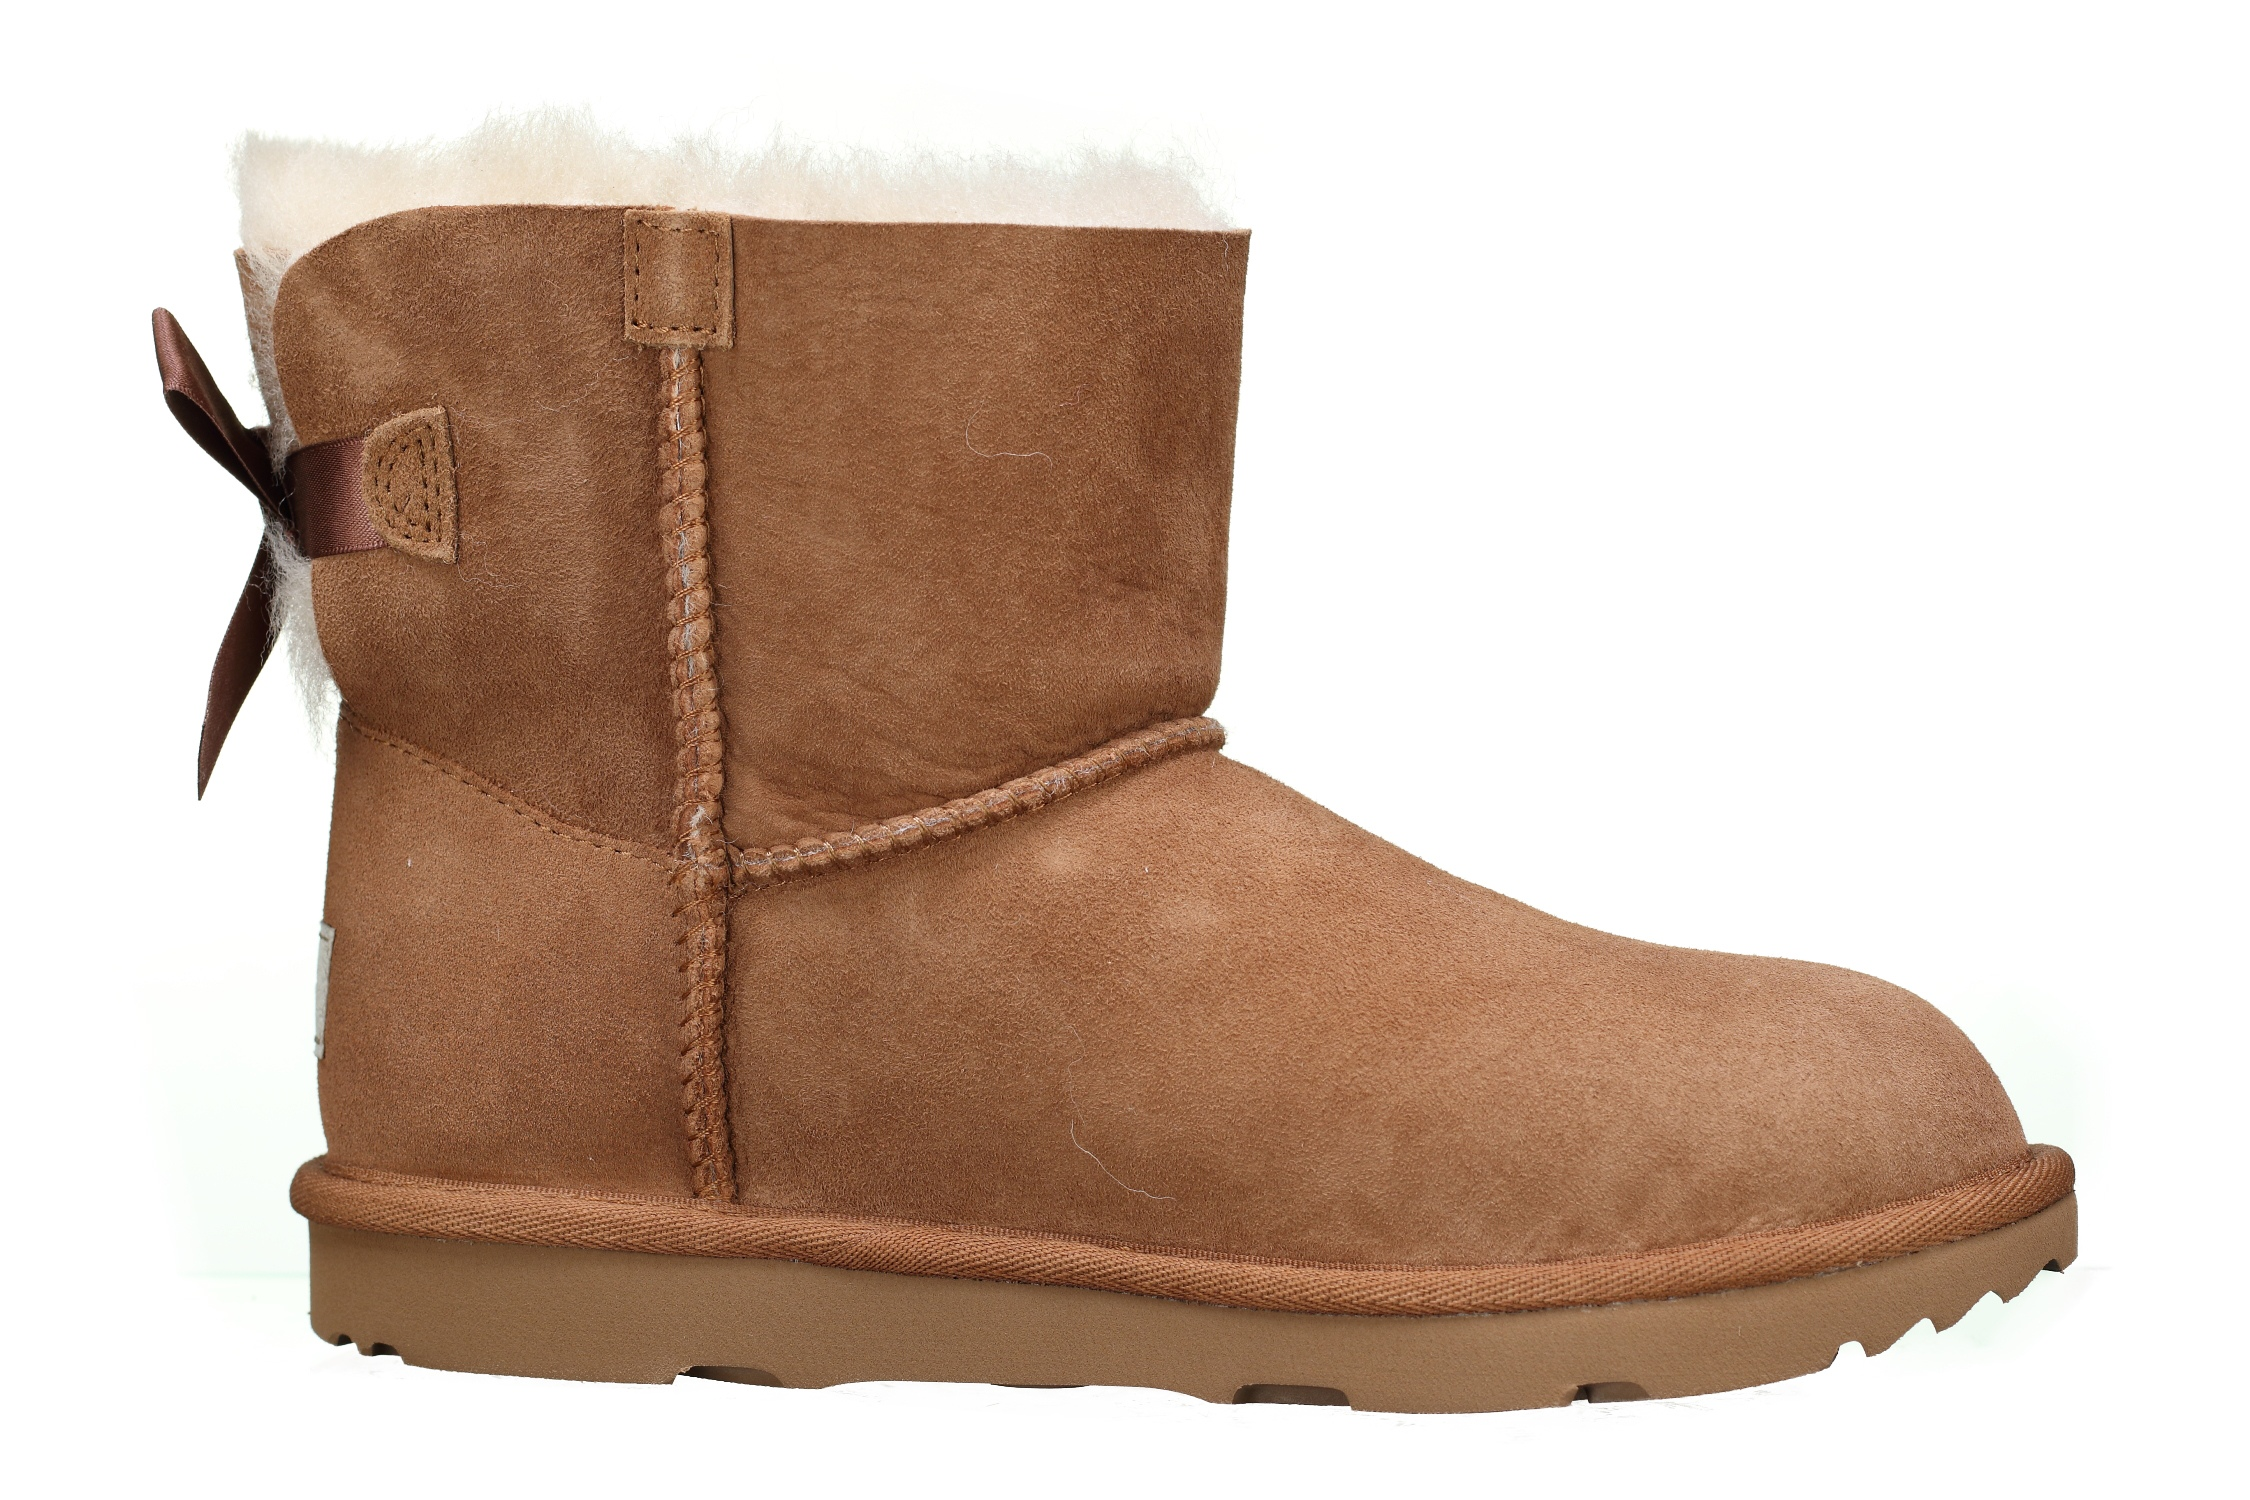 http://www.leadermode.com/135480/ugg-k-mini-bailey-bow-2-1017397-k-chesnut.jpg